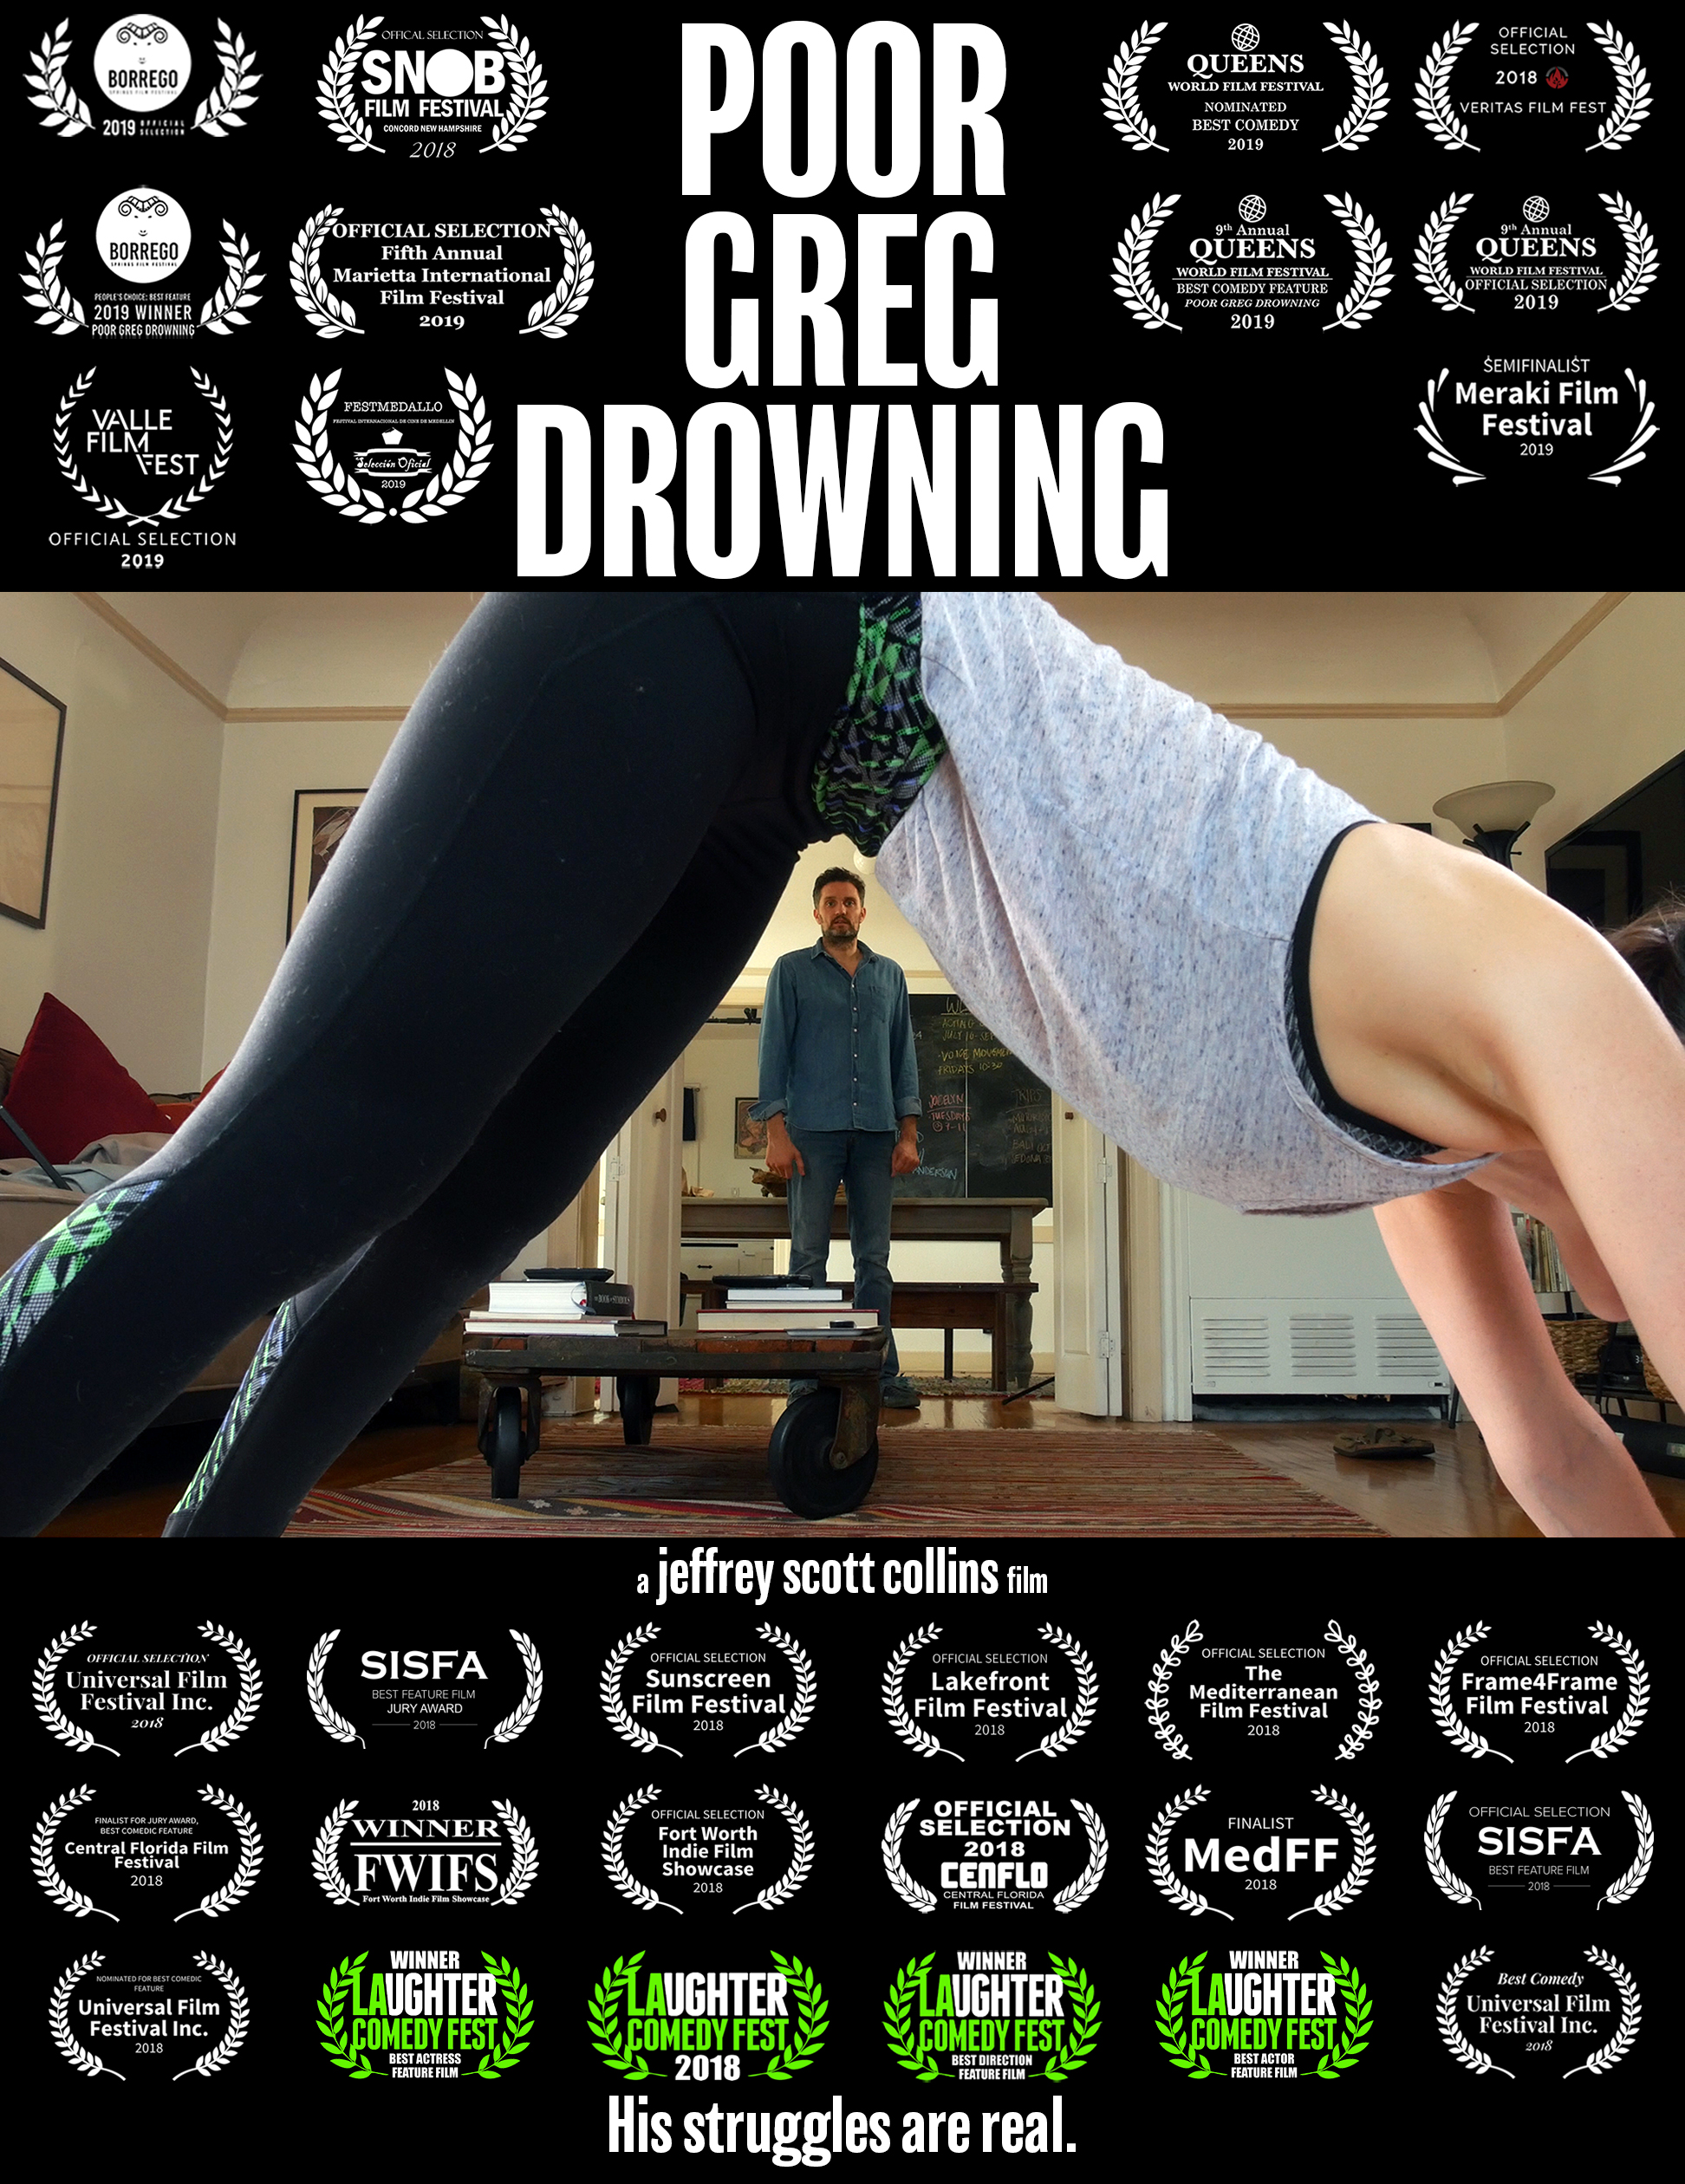 Poor Greg Drowning temp poster.jpg